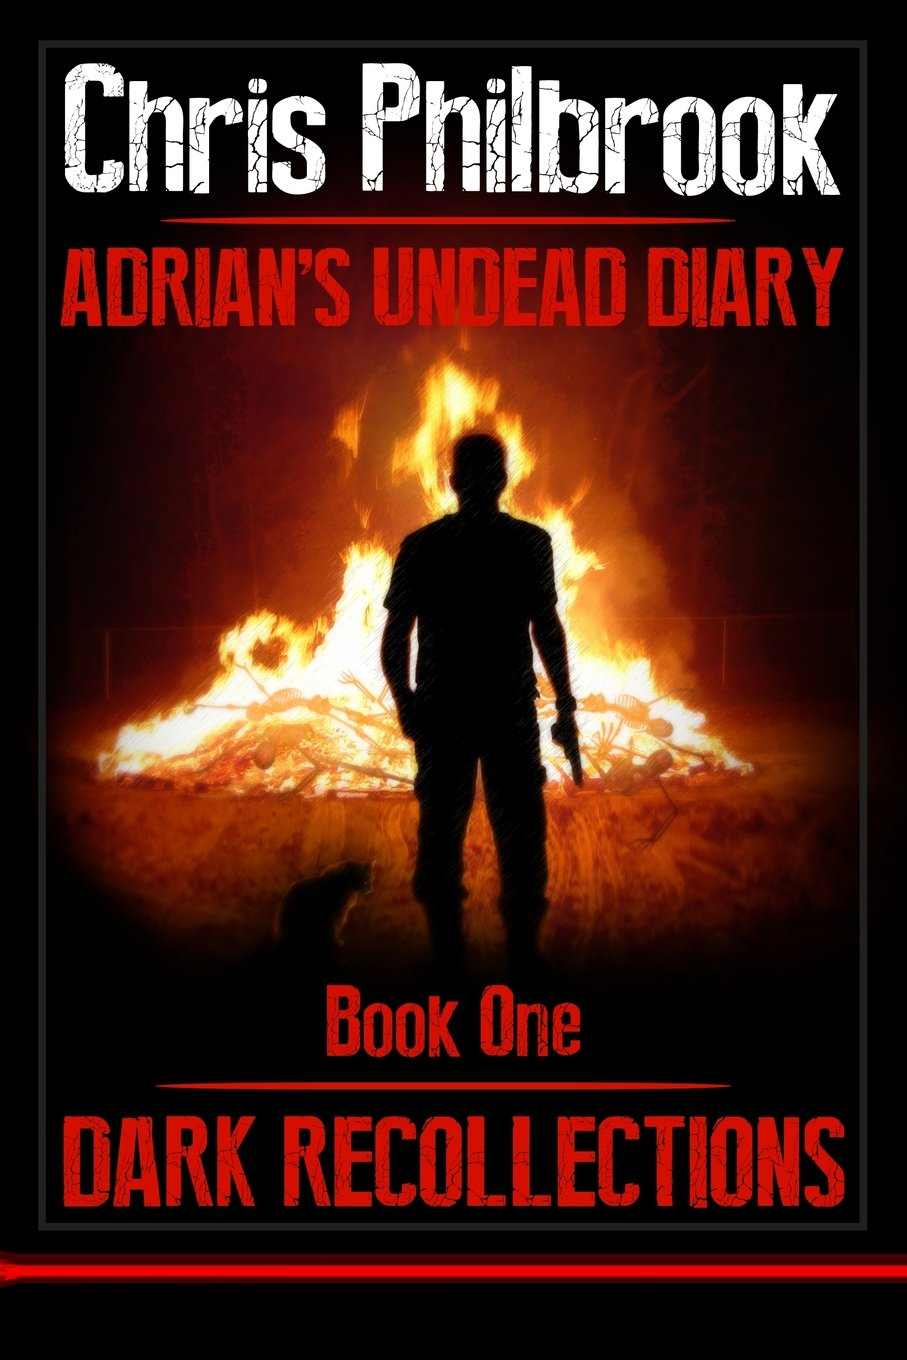 Dark Recollections: Adrian's Undead Diary Book One (volume 1): Chris  Philbrook: 9781493568710: Amazon: Books